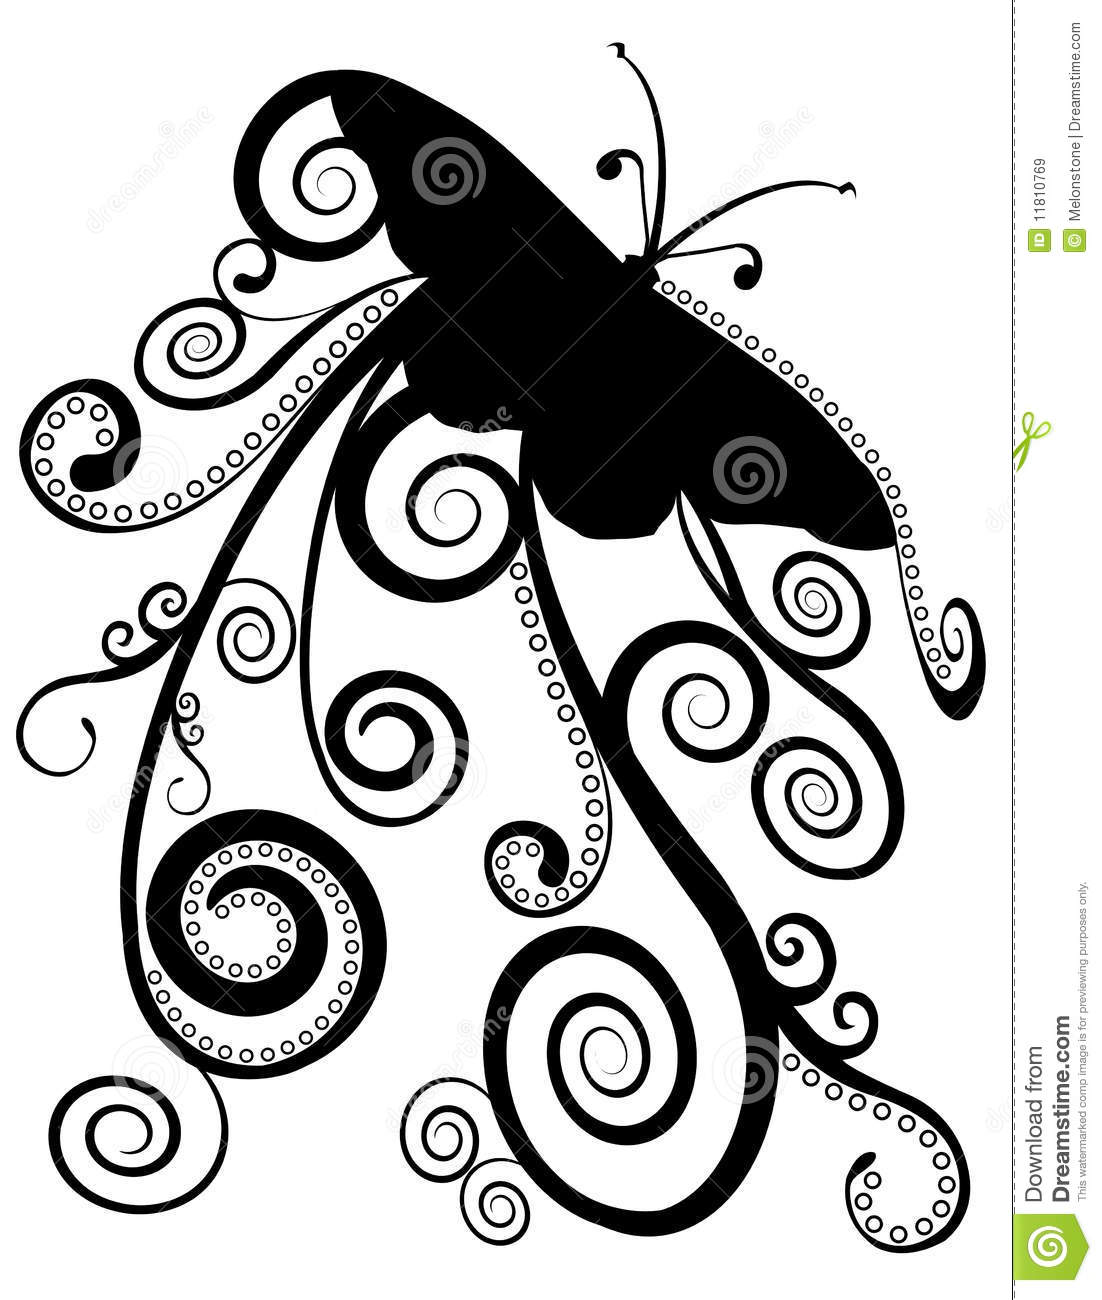 butterfly spirals design stock illustration  image of